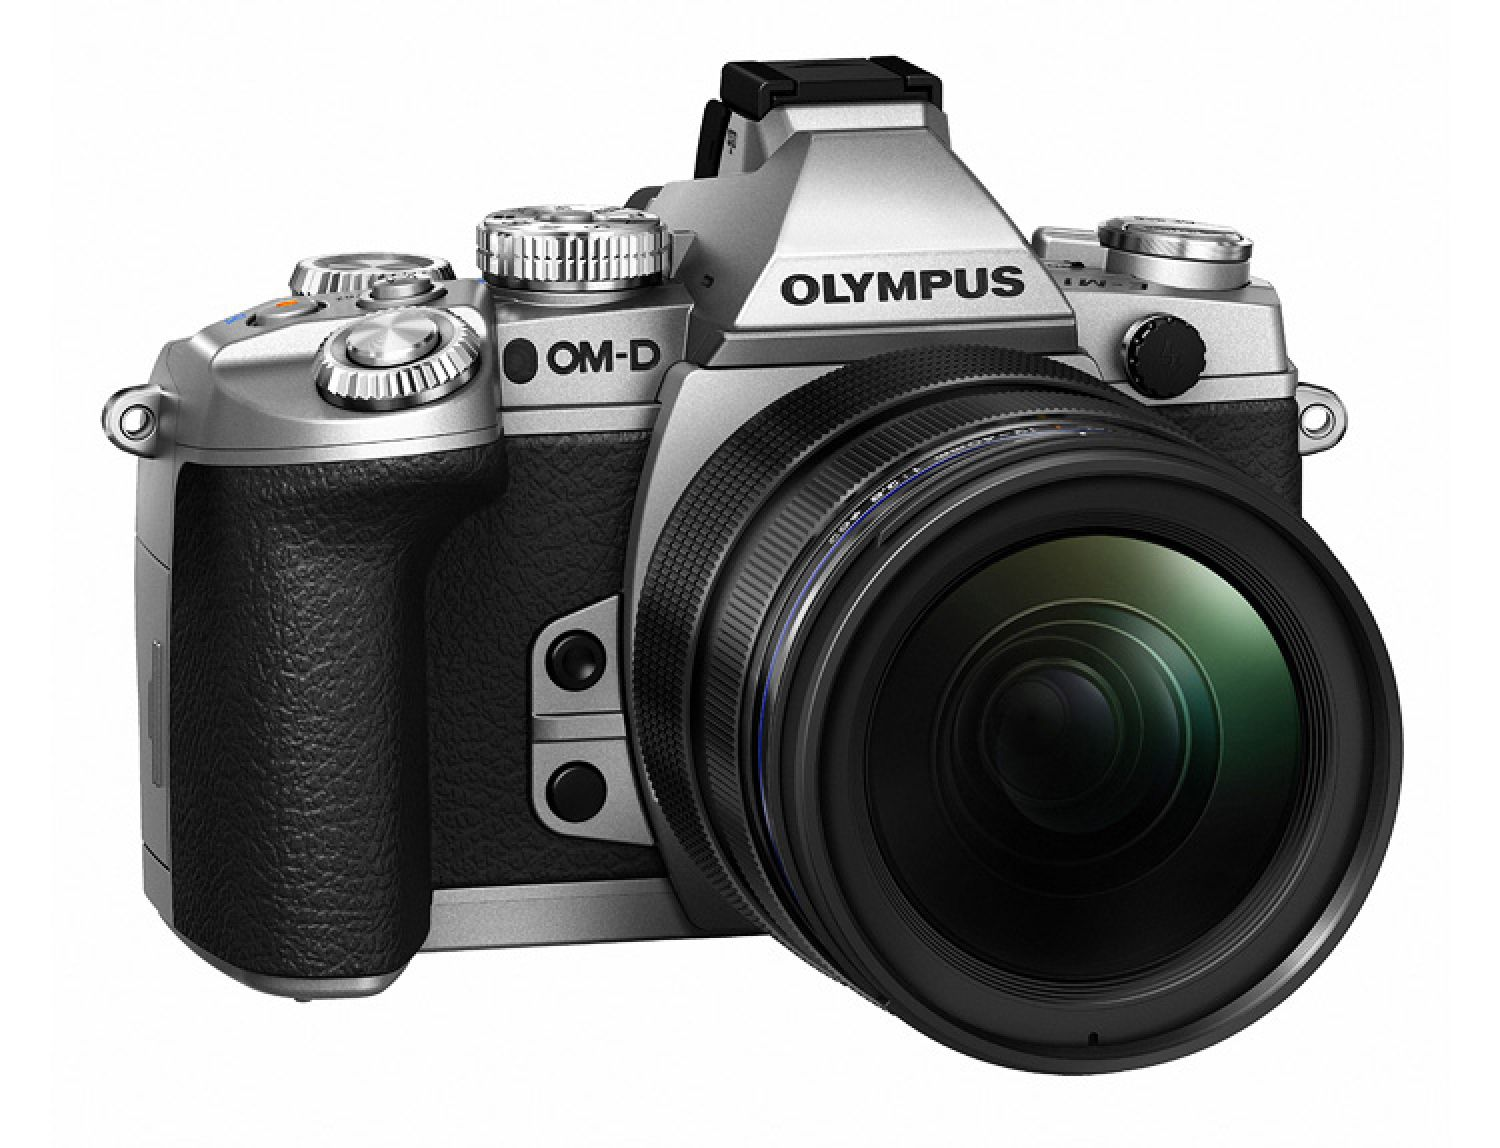 Olympus OM-D EM-1 Silver Body and Firmware Upgrade